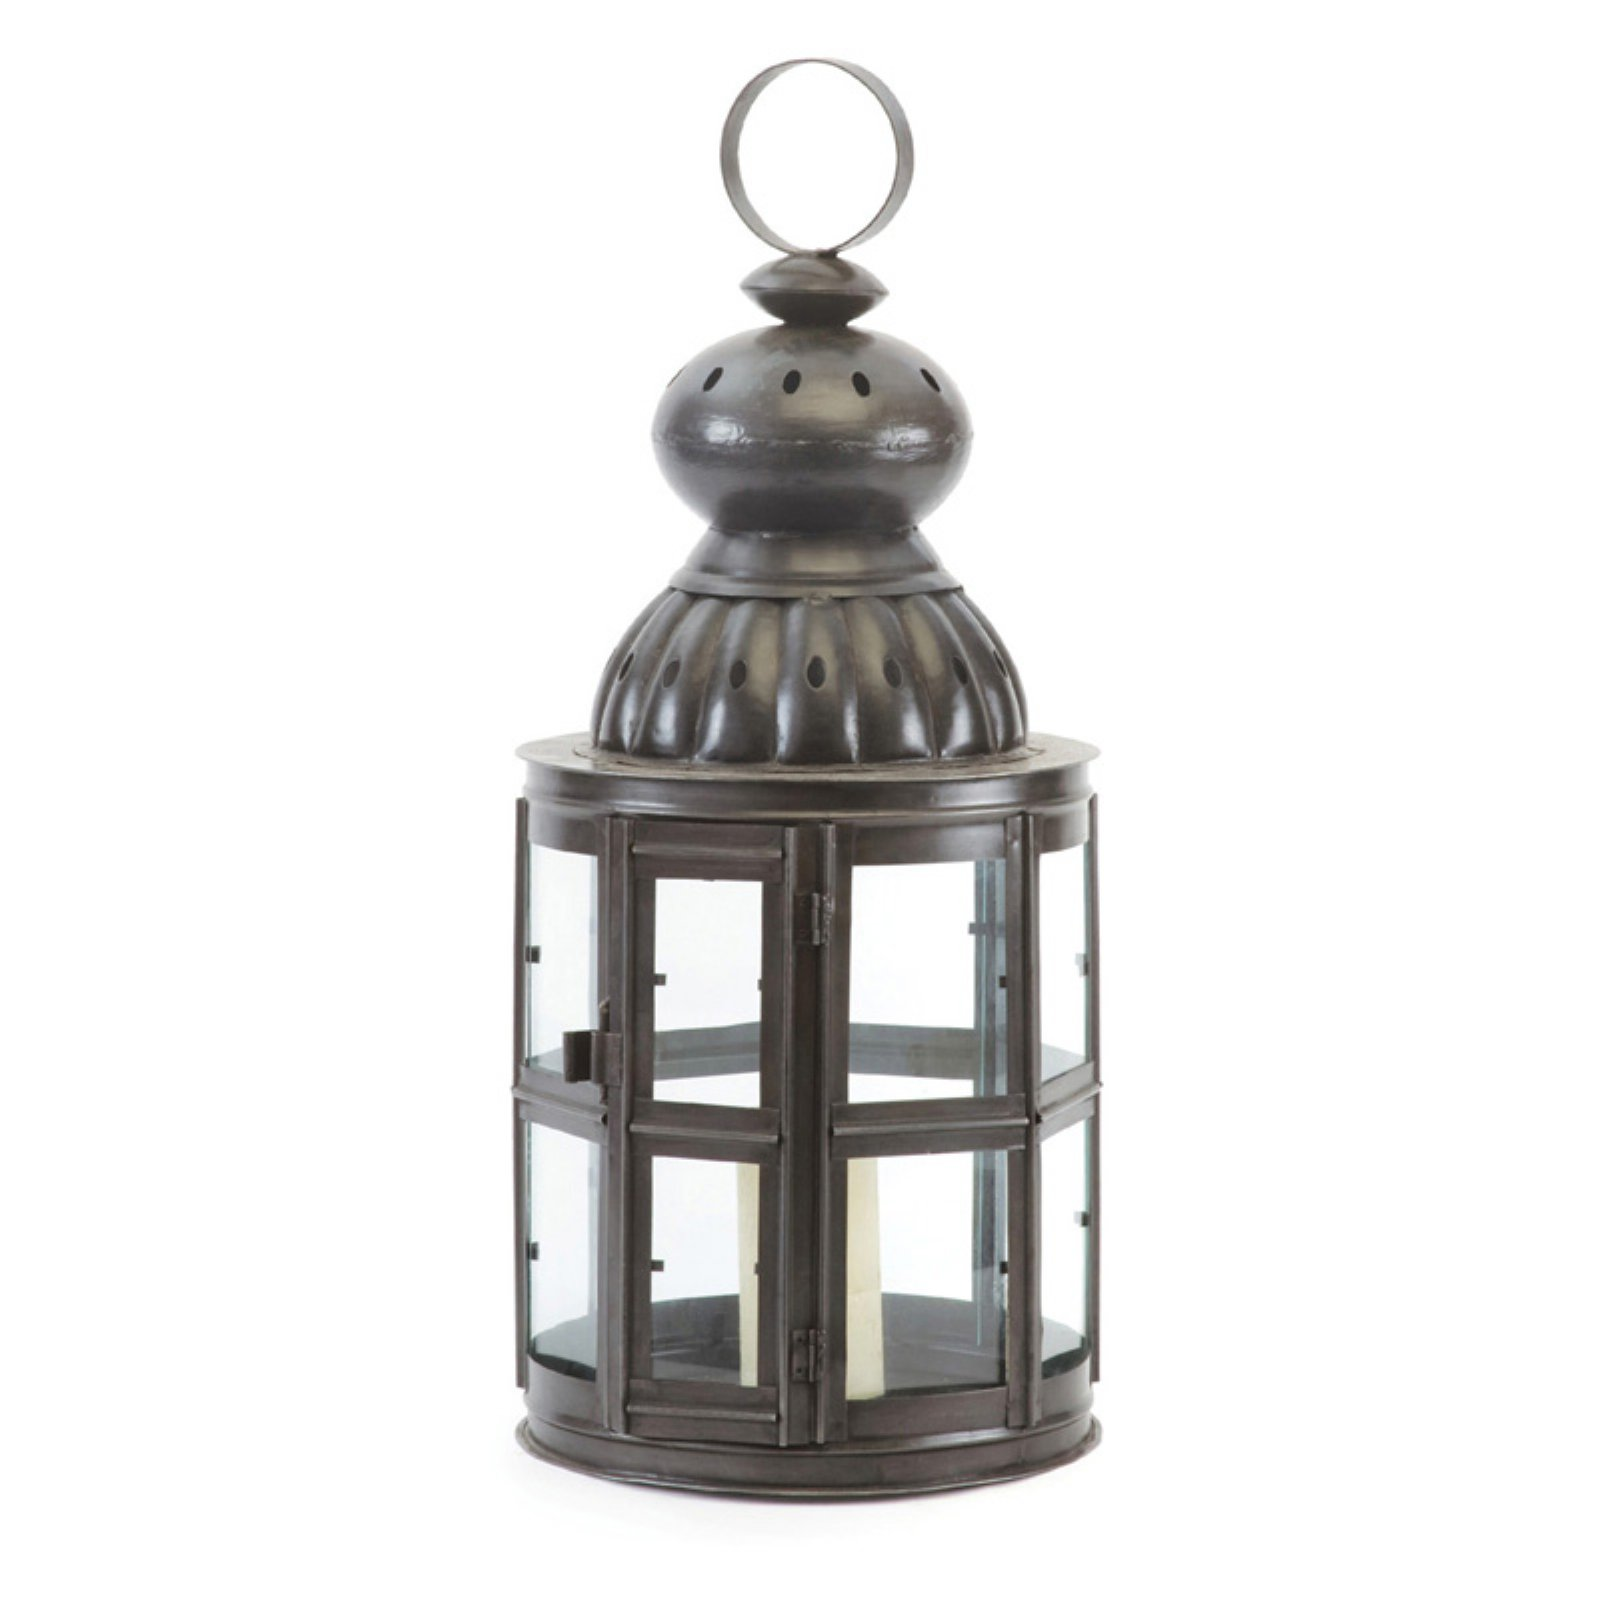 Hip Vintage Laguna Lantern Candle Holder